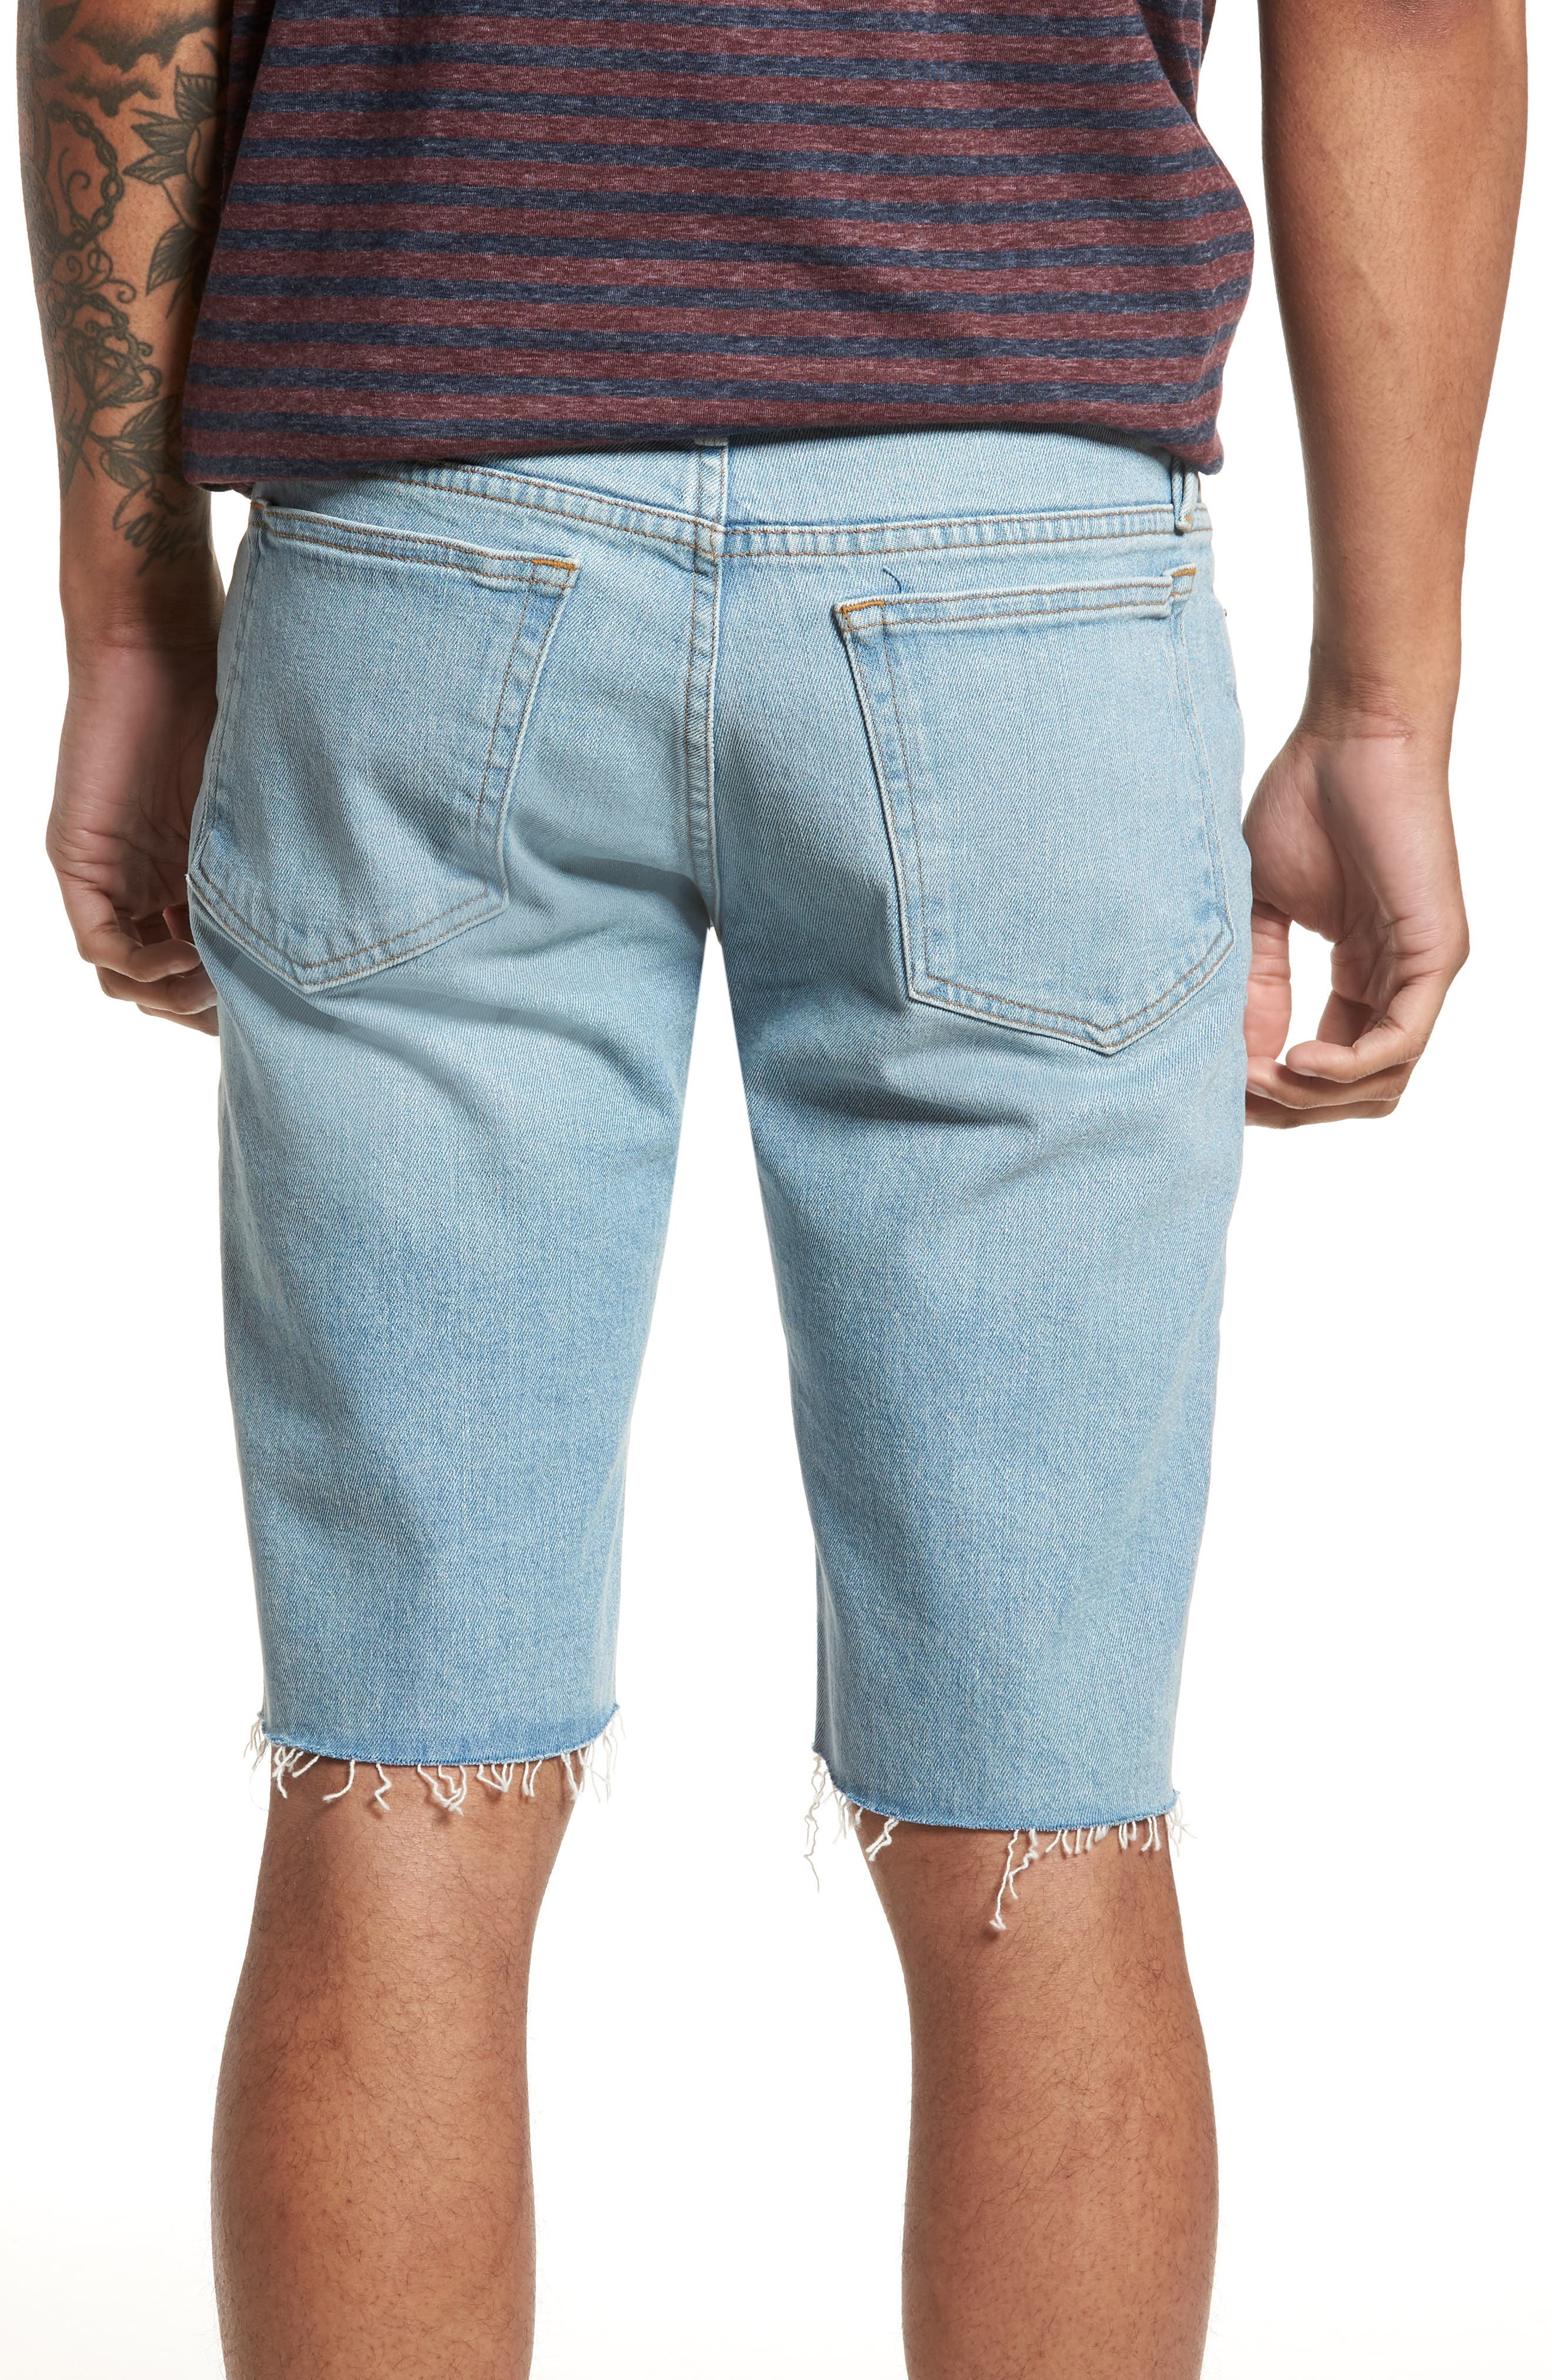 L'Homme Cutoff Denim Shorts,                             Alternate thumbnail 2, color,                             Crosby